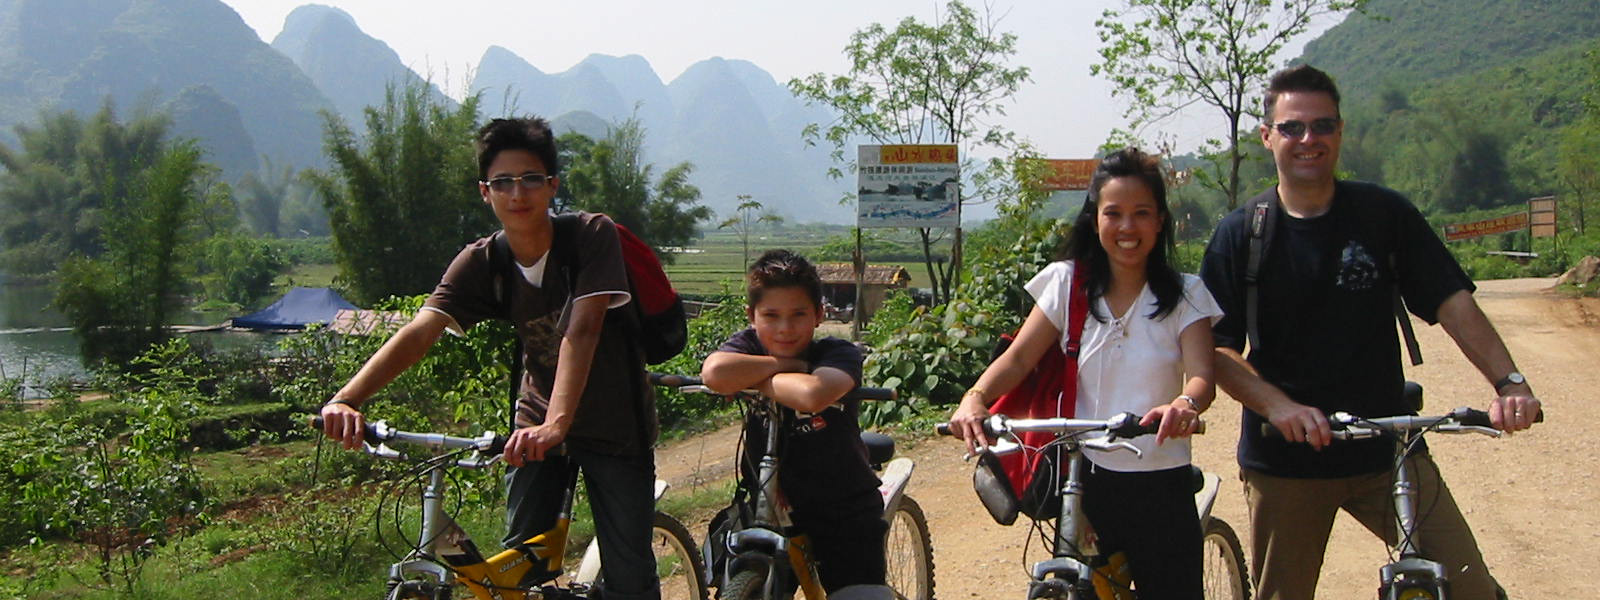 Cycling into the best scenery of China